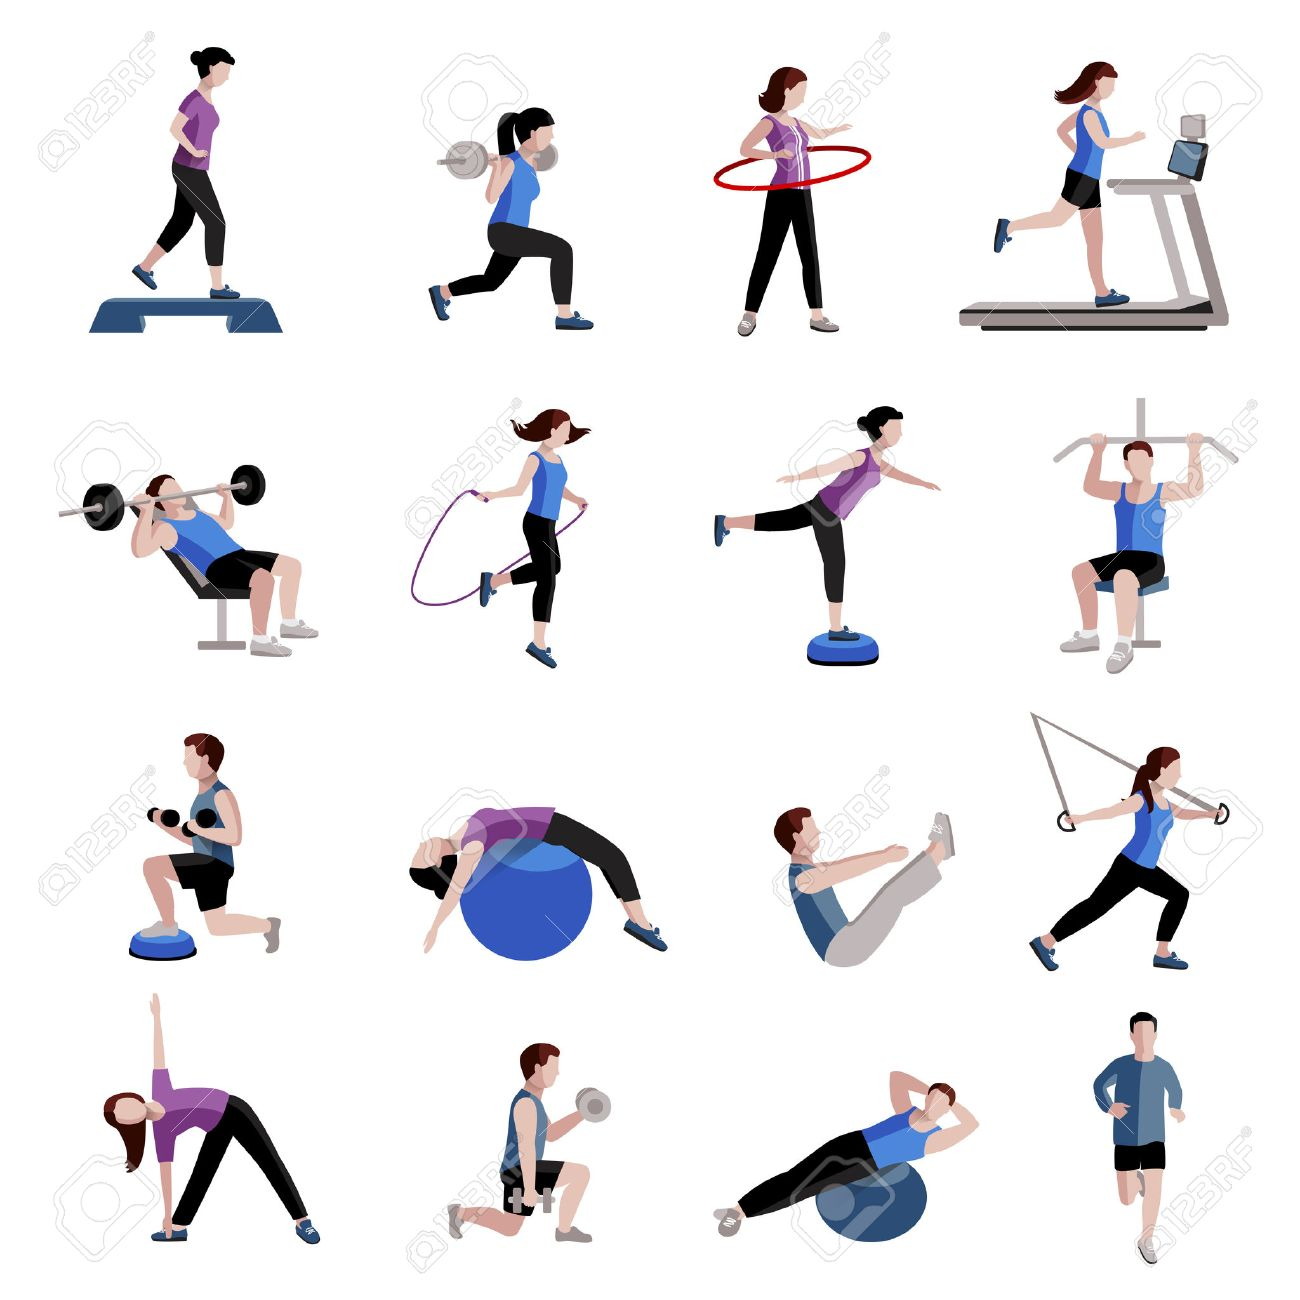 Fitness cardio exercise and equipment for men women two tints flat icons collections abstract isolated vector illustration - 43210300